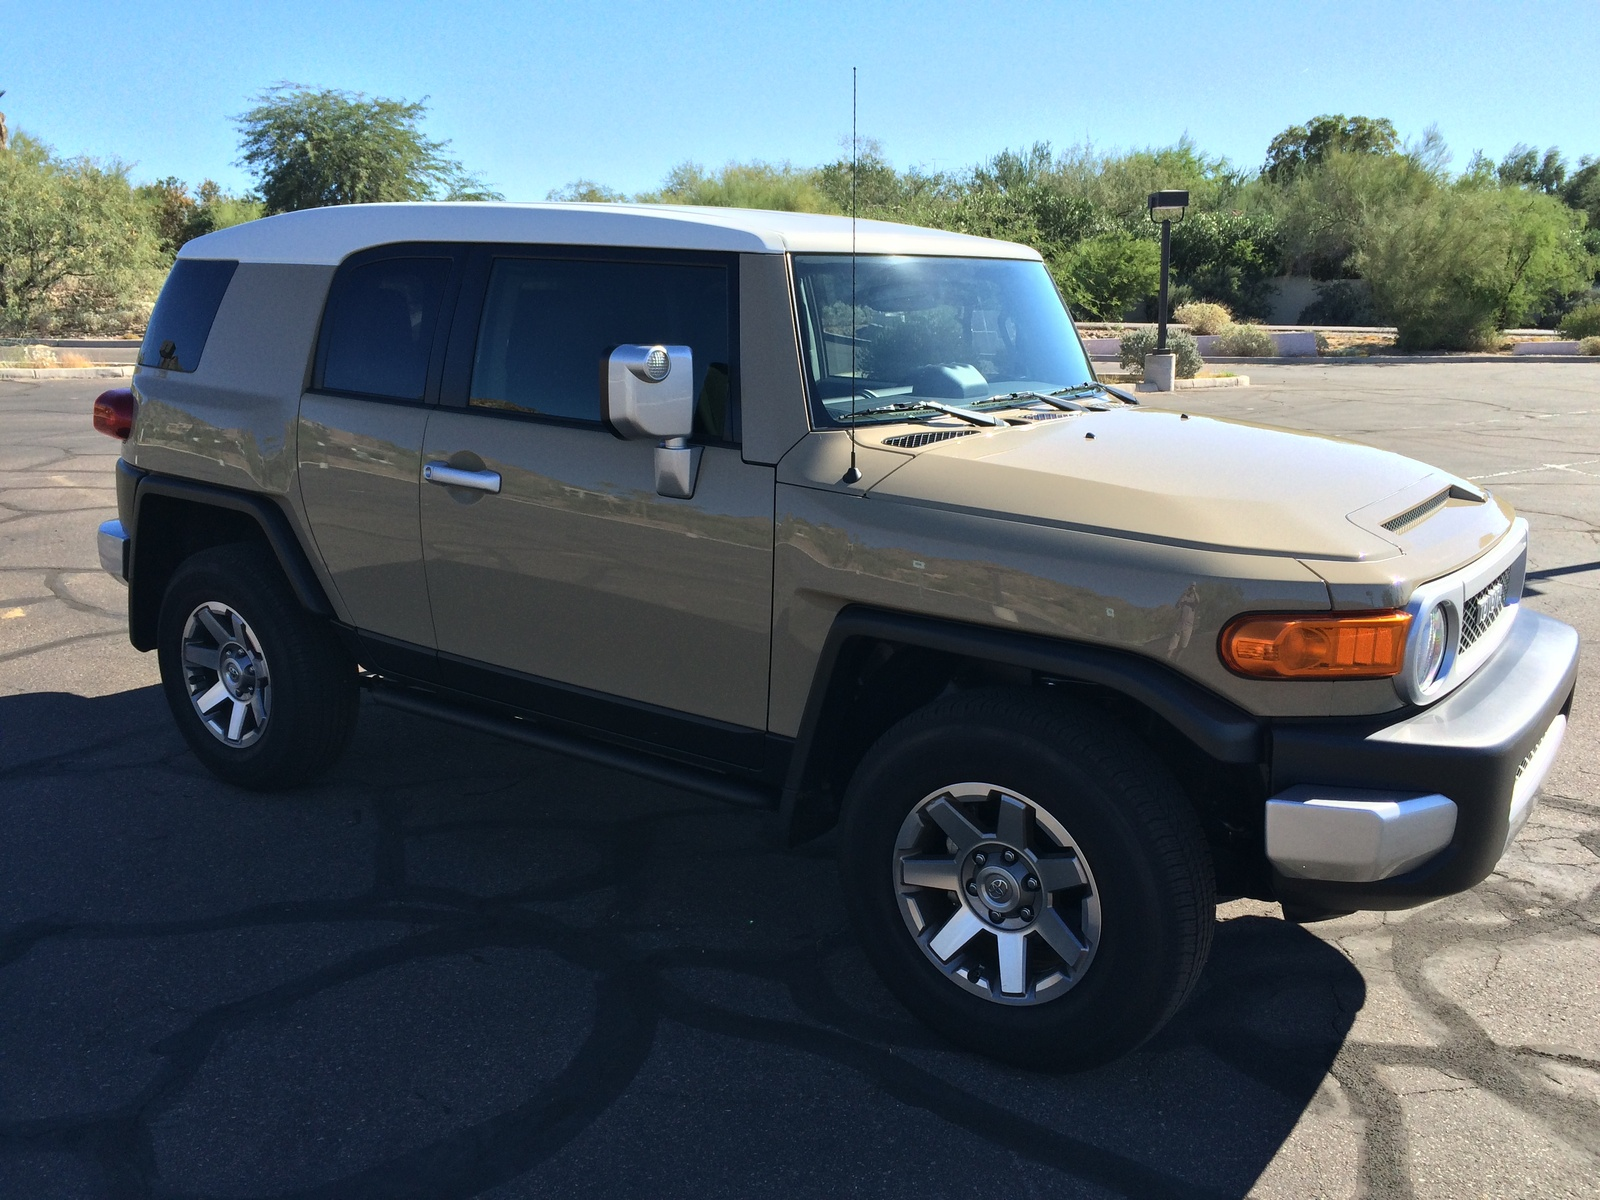 New 2014 Toyota FJ Cruiser For Sale - CarGurus